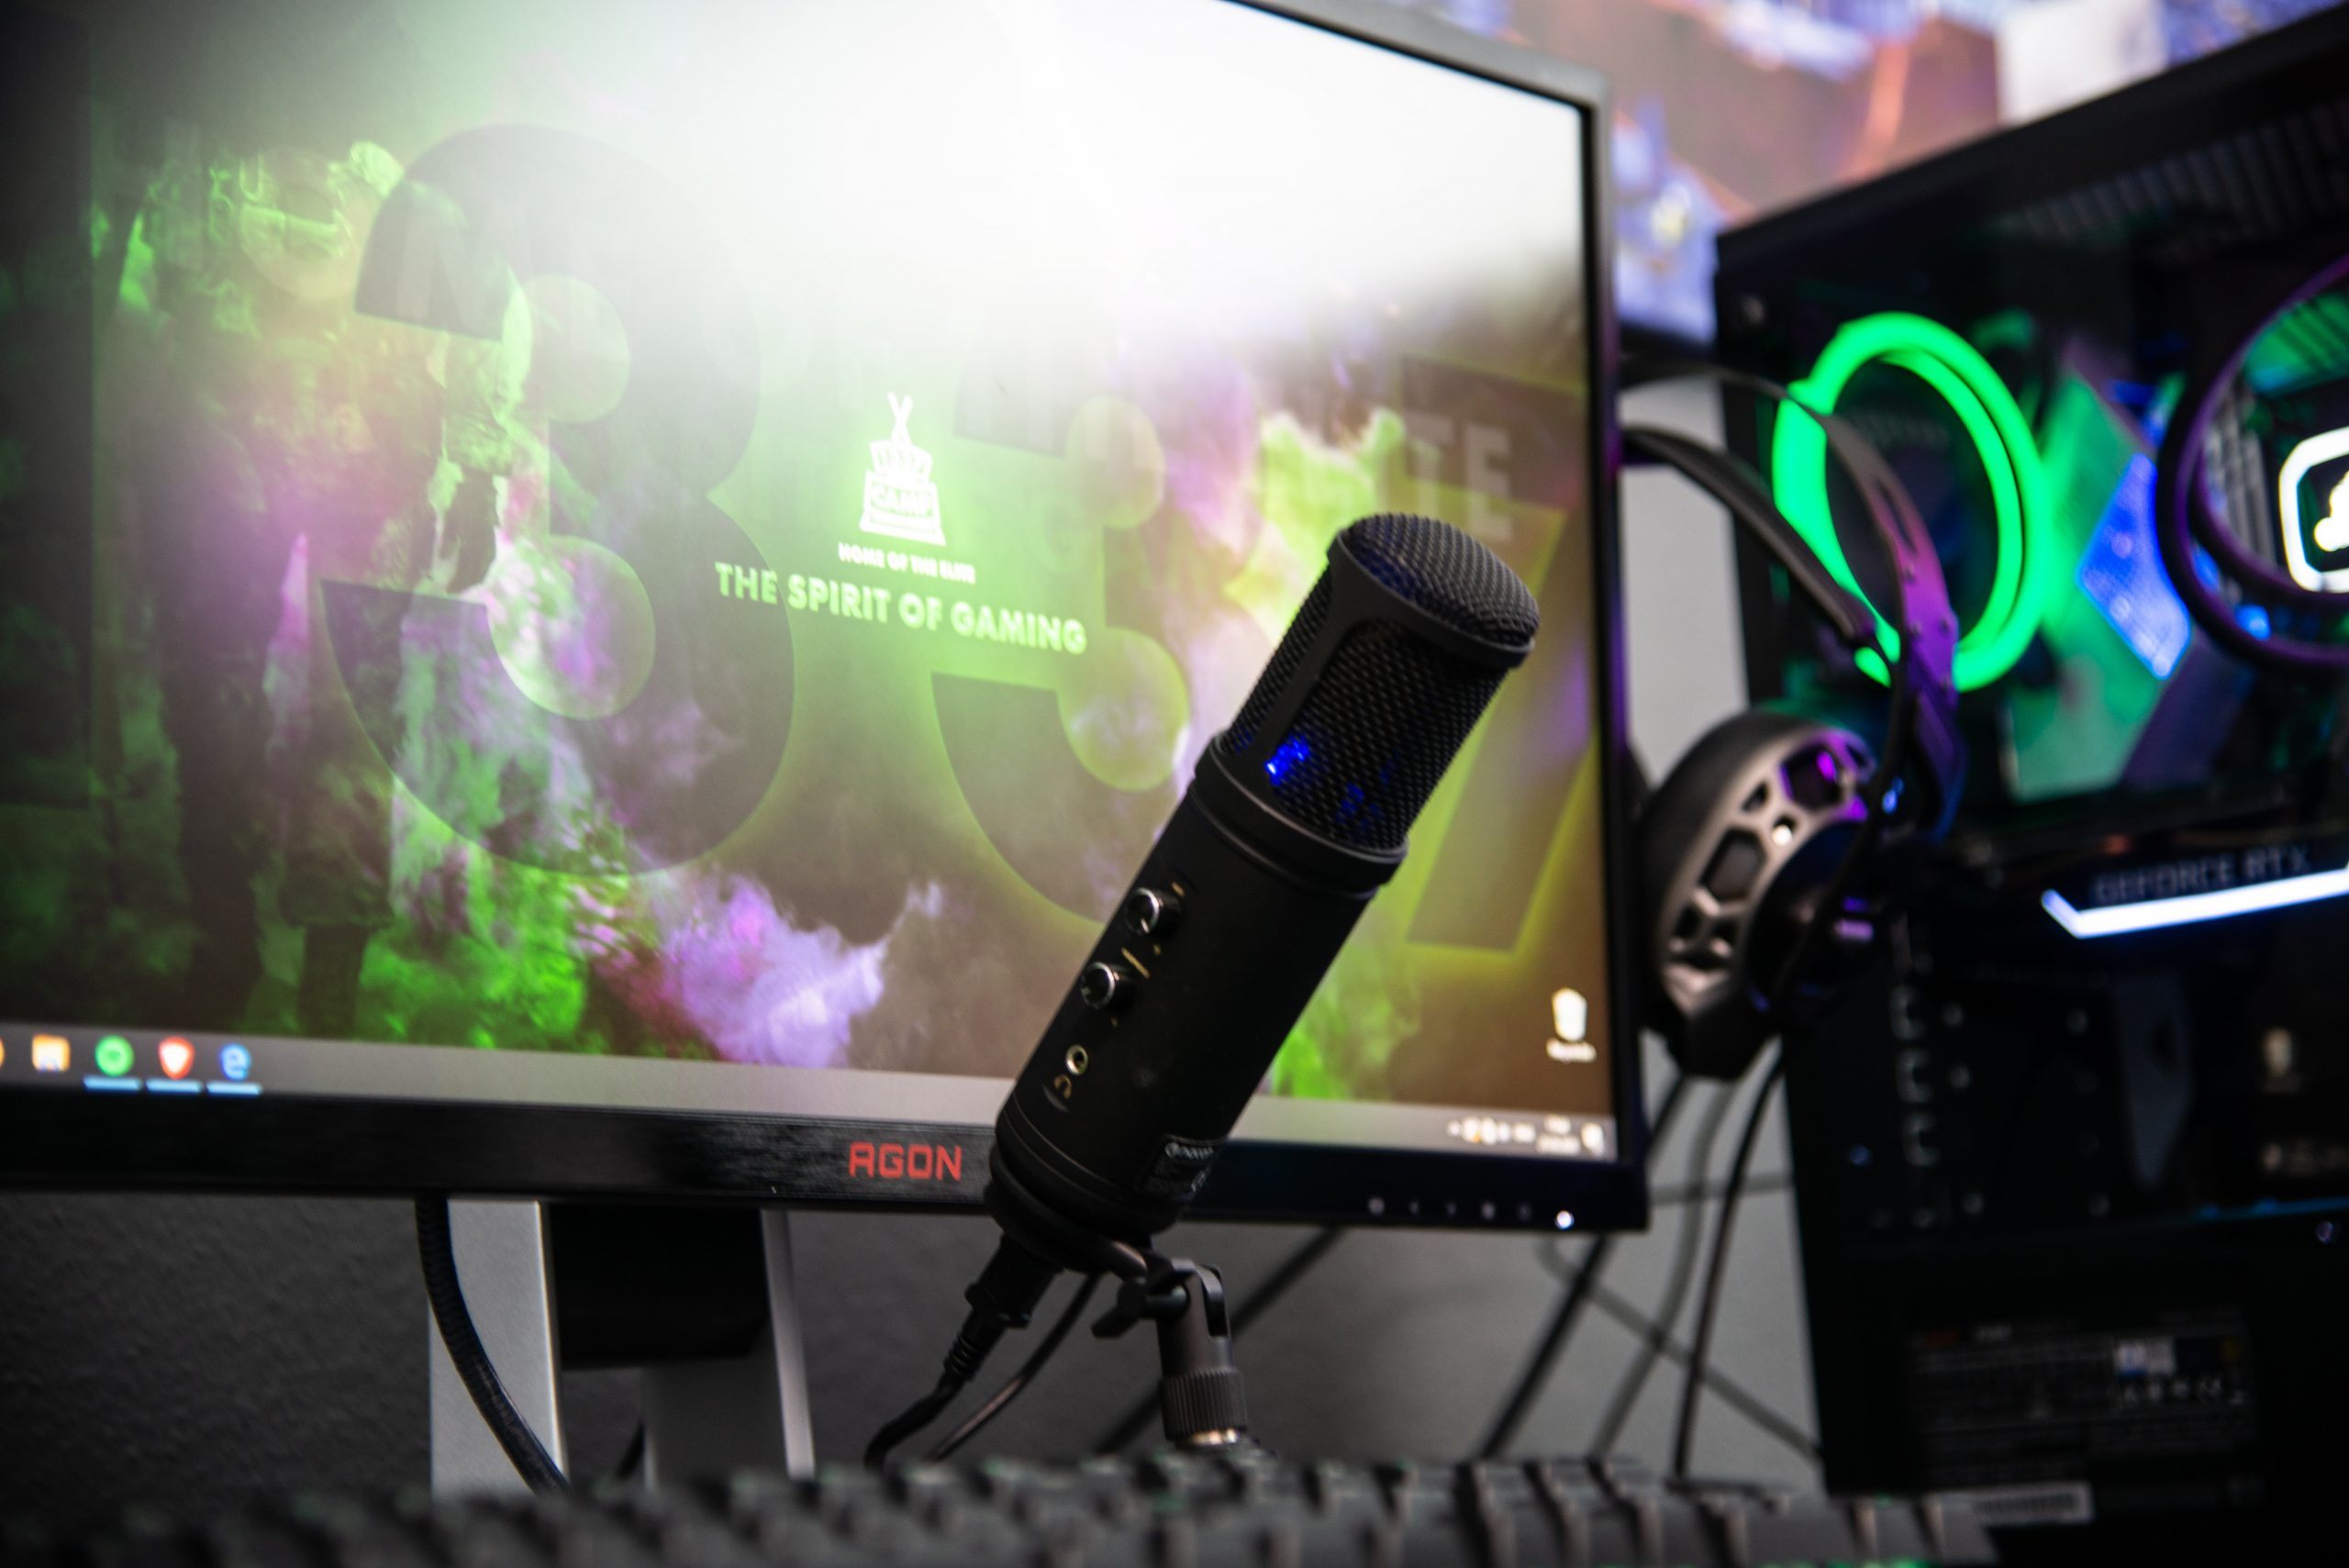 How to stream on Twitch? A quick guide for beginners